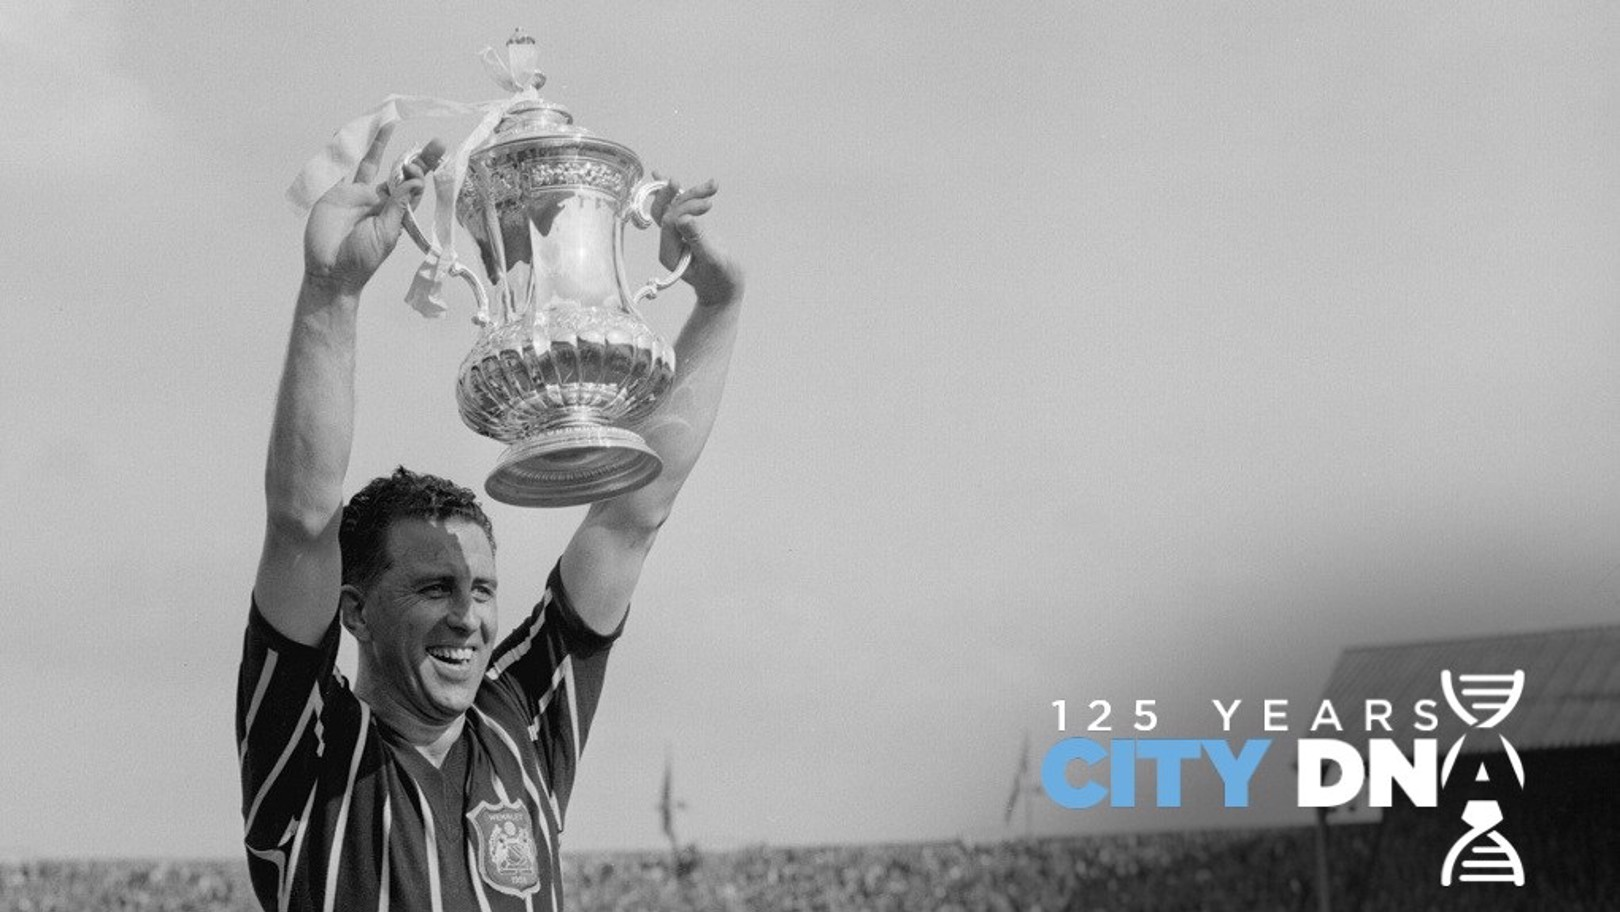 City DNA #32: The captain made of Welsh granite